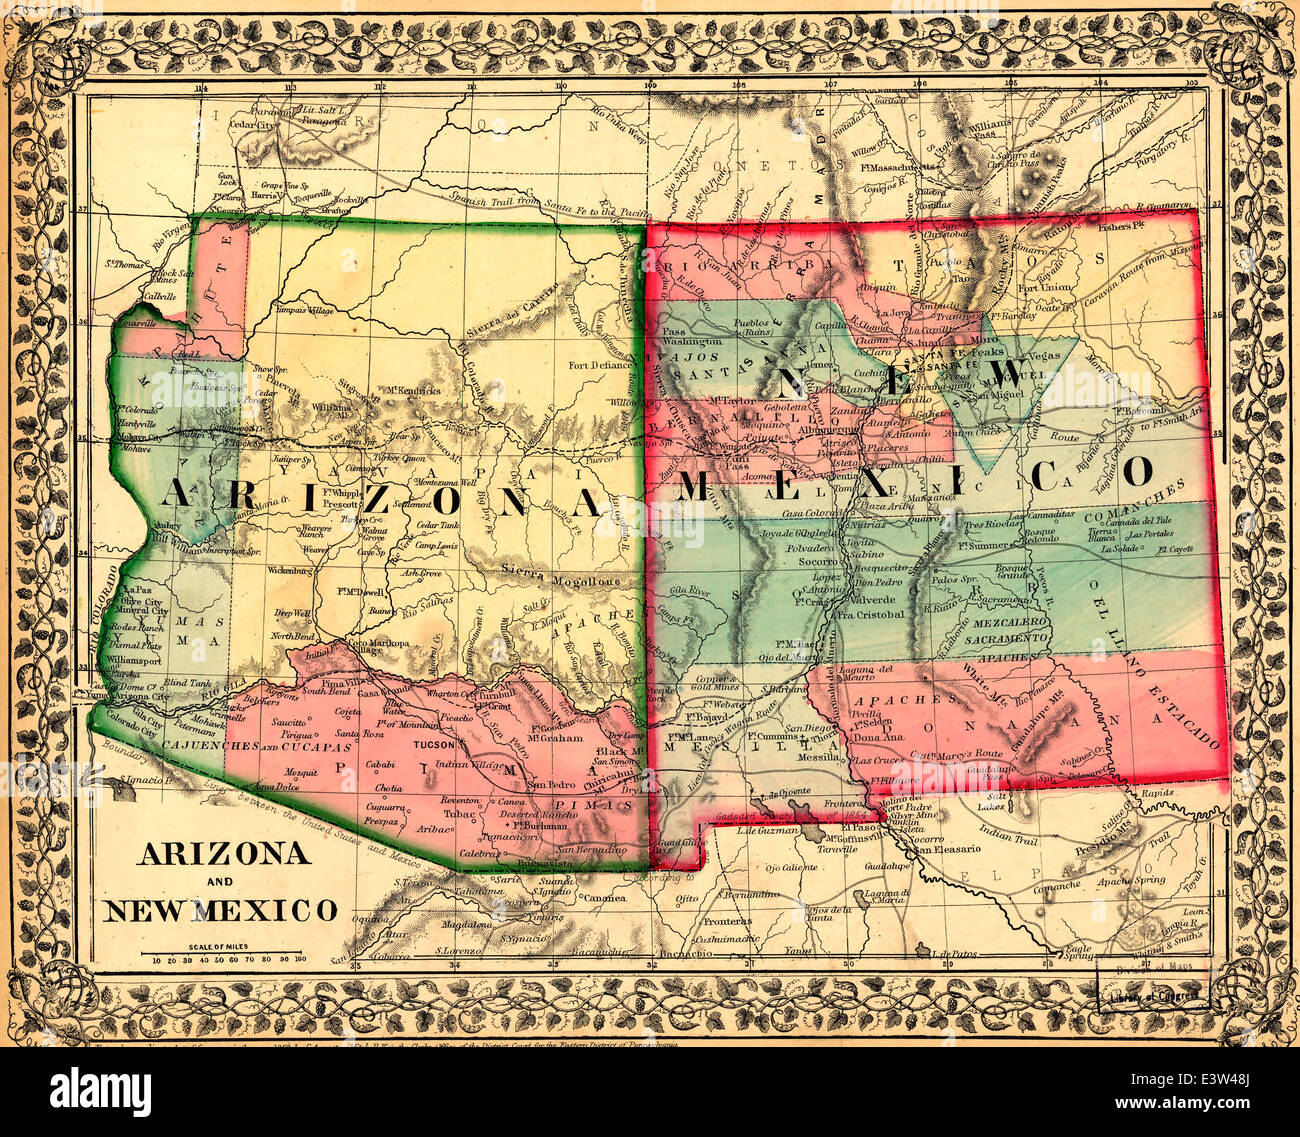 Map Of Arizona To Mexico.Arizona Mexico Map Stock Photos Arizona Mexico Map Stock Images